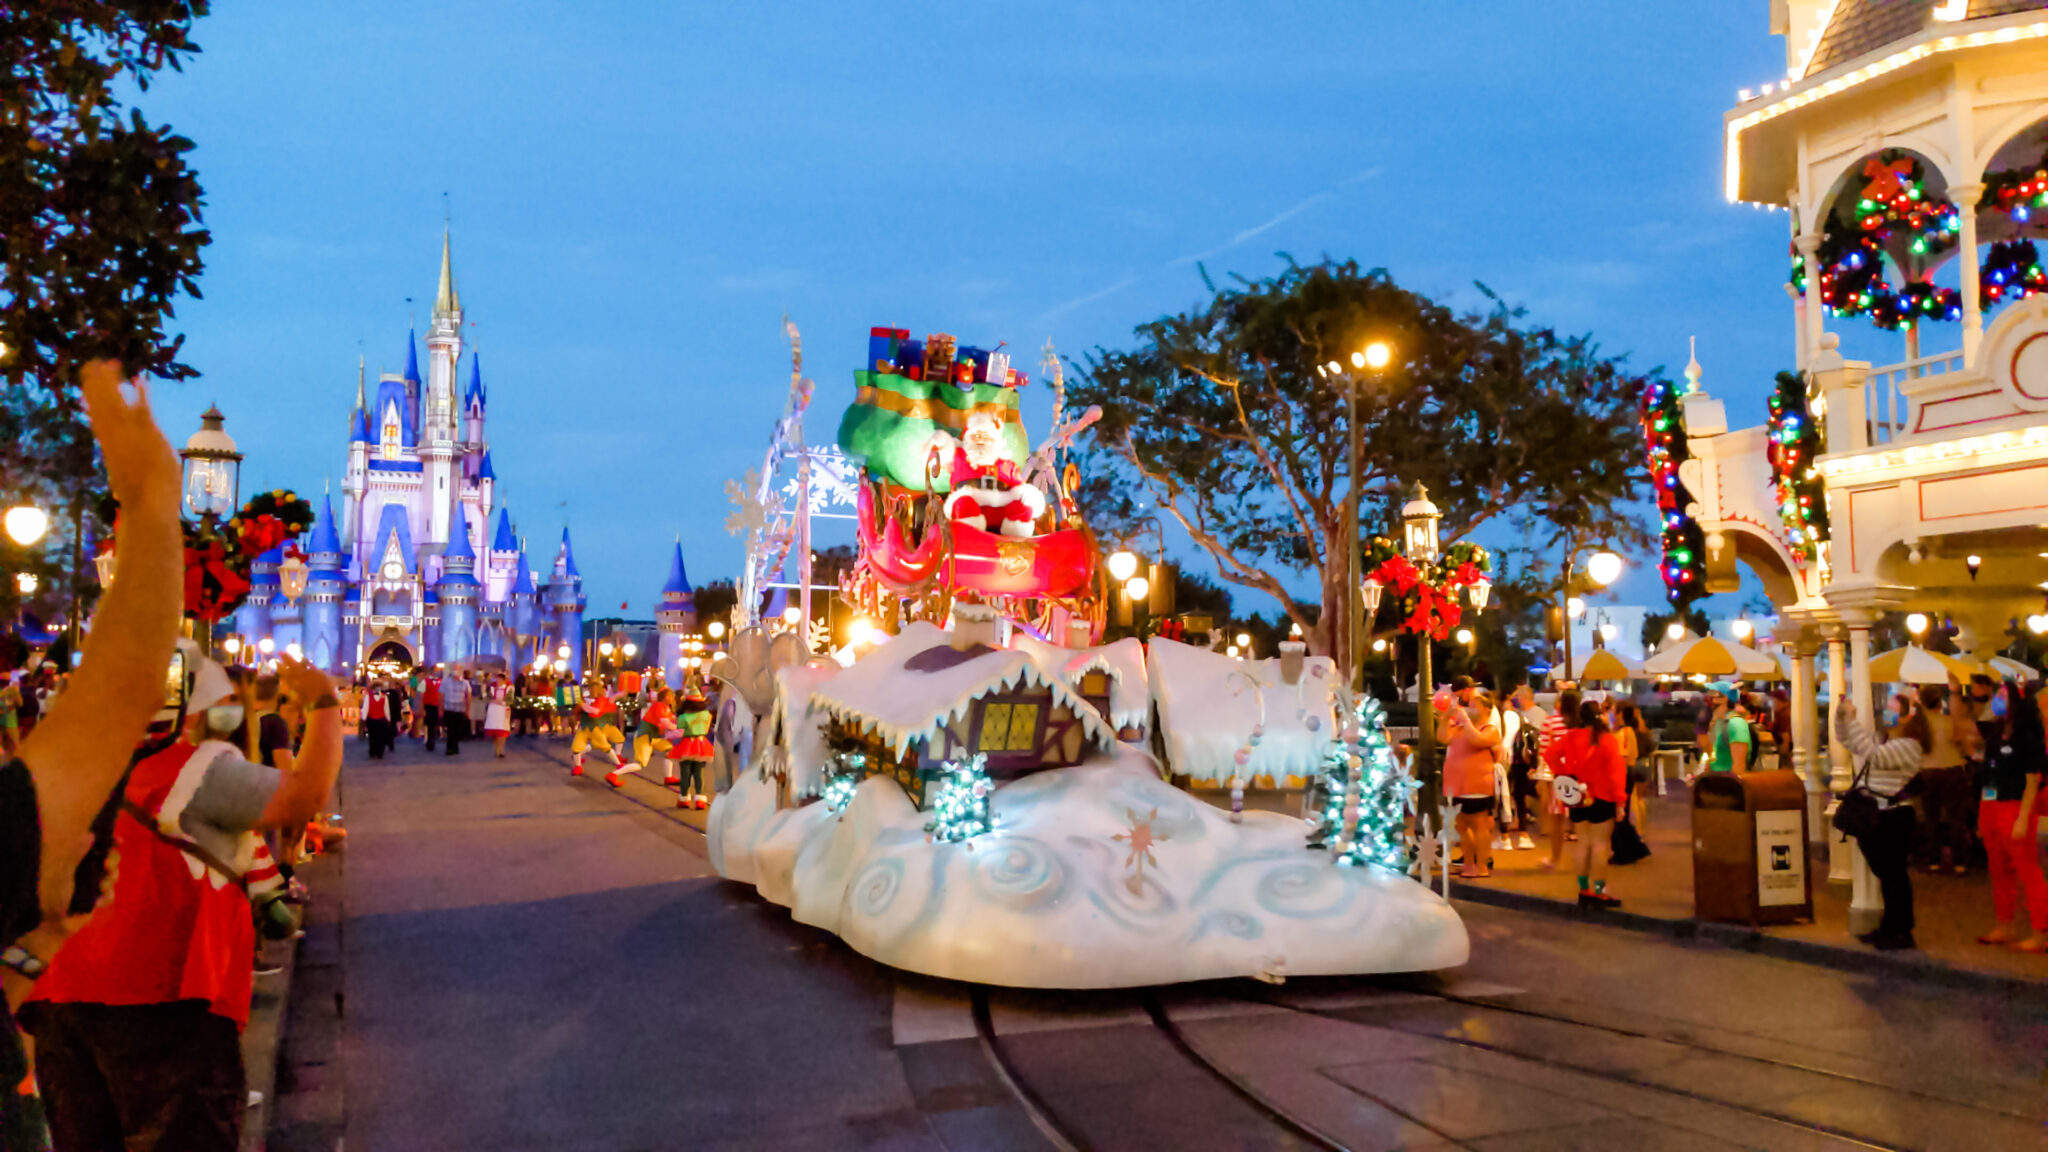 Guide to the 2020 Christmas Season at Walt Disney World All Things with Purpose Sarah Lemp 13